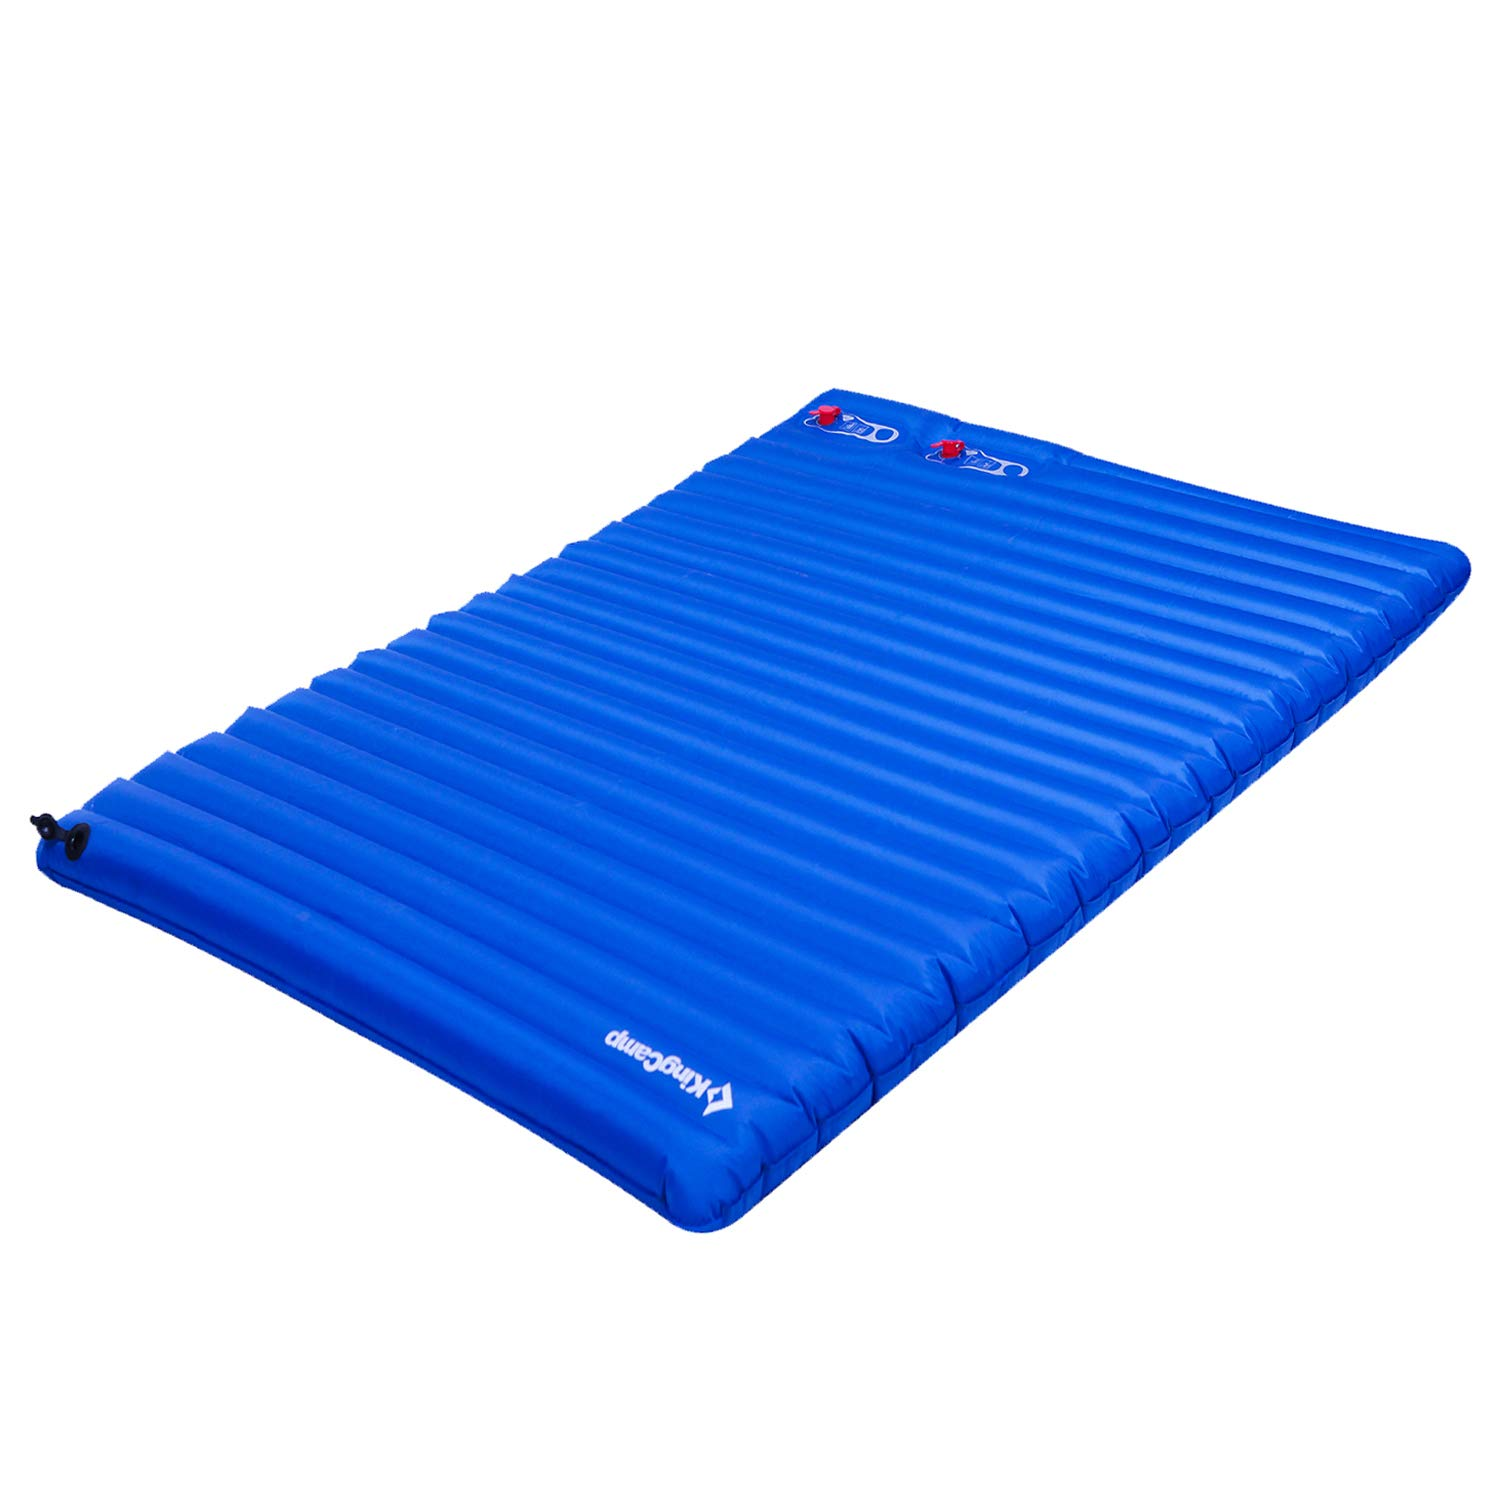 KingCamp Light Double Size Outdoor Camping Air Mattress Mat Pad Bed with Built-in Foot Pump, Blue, Double by KingCamp